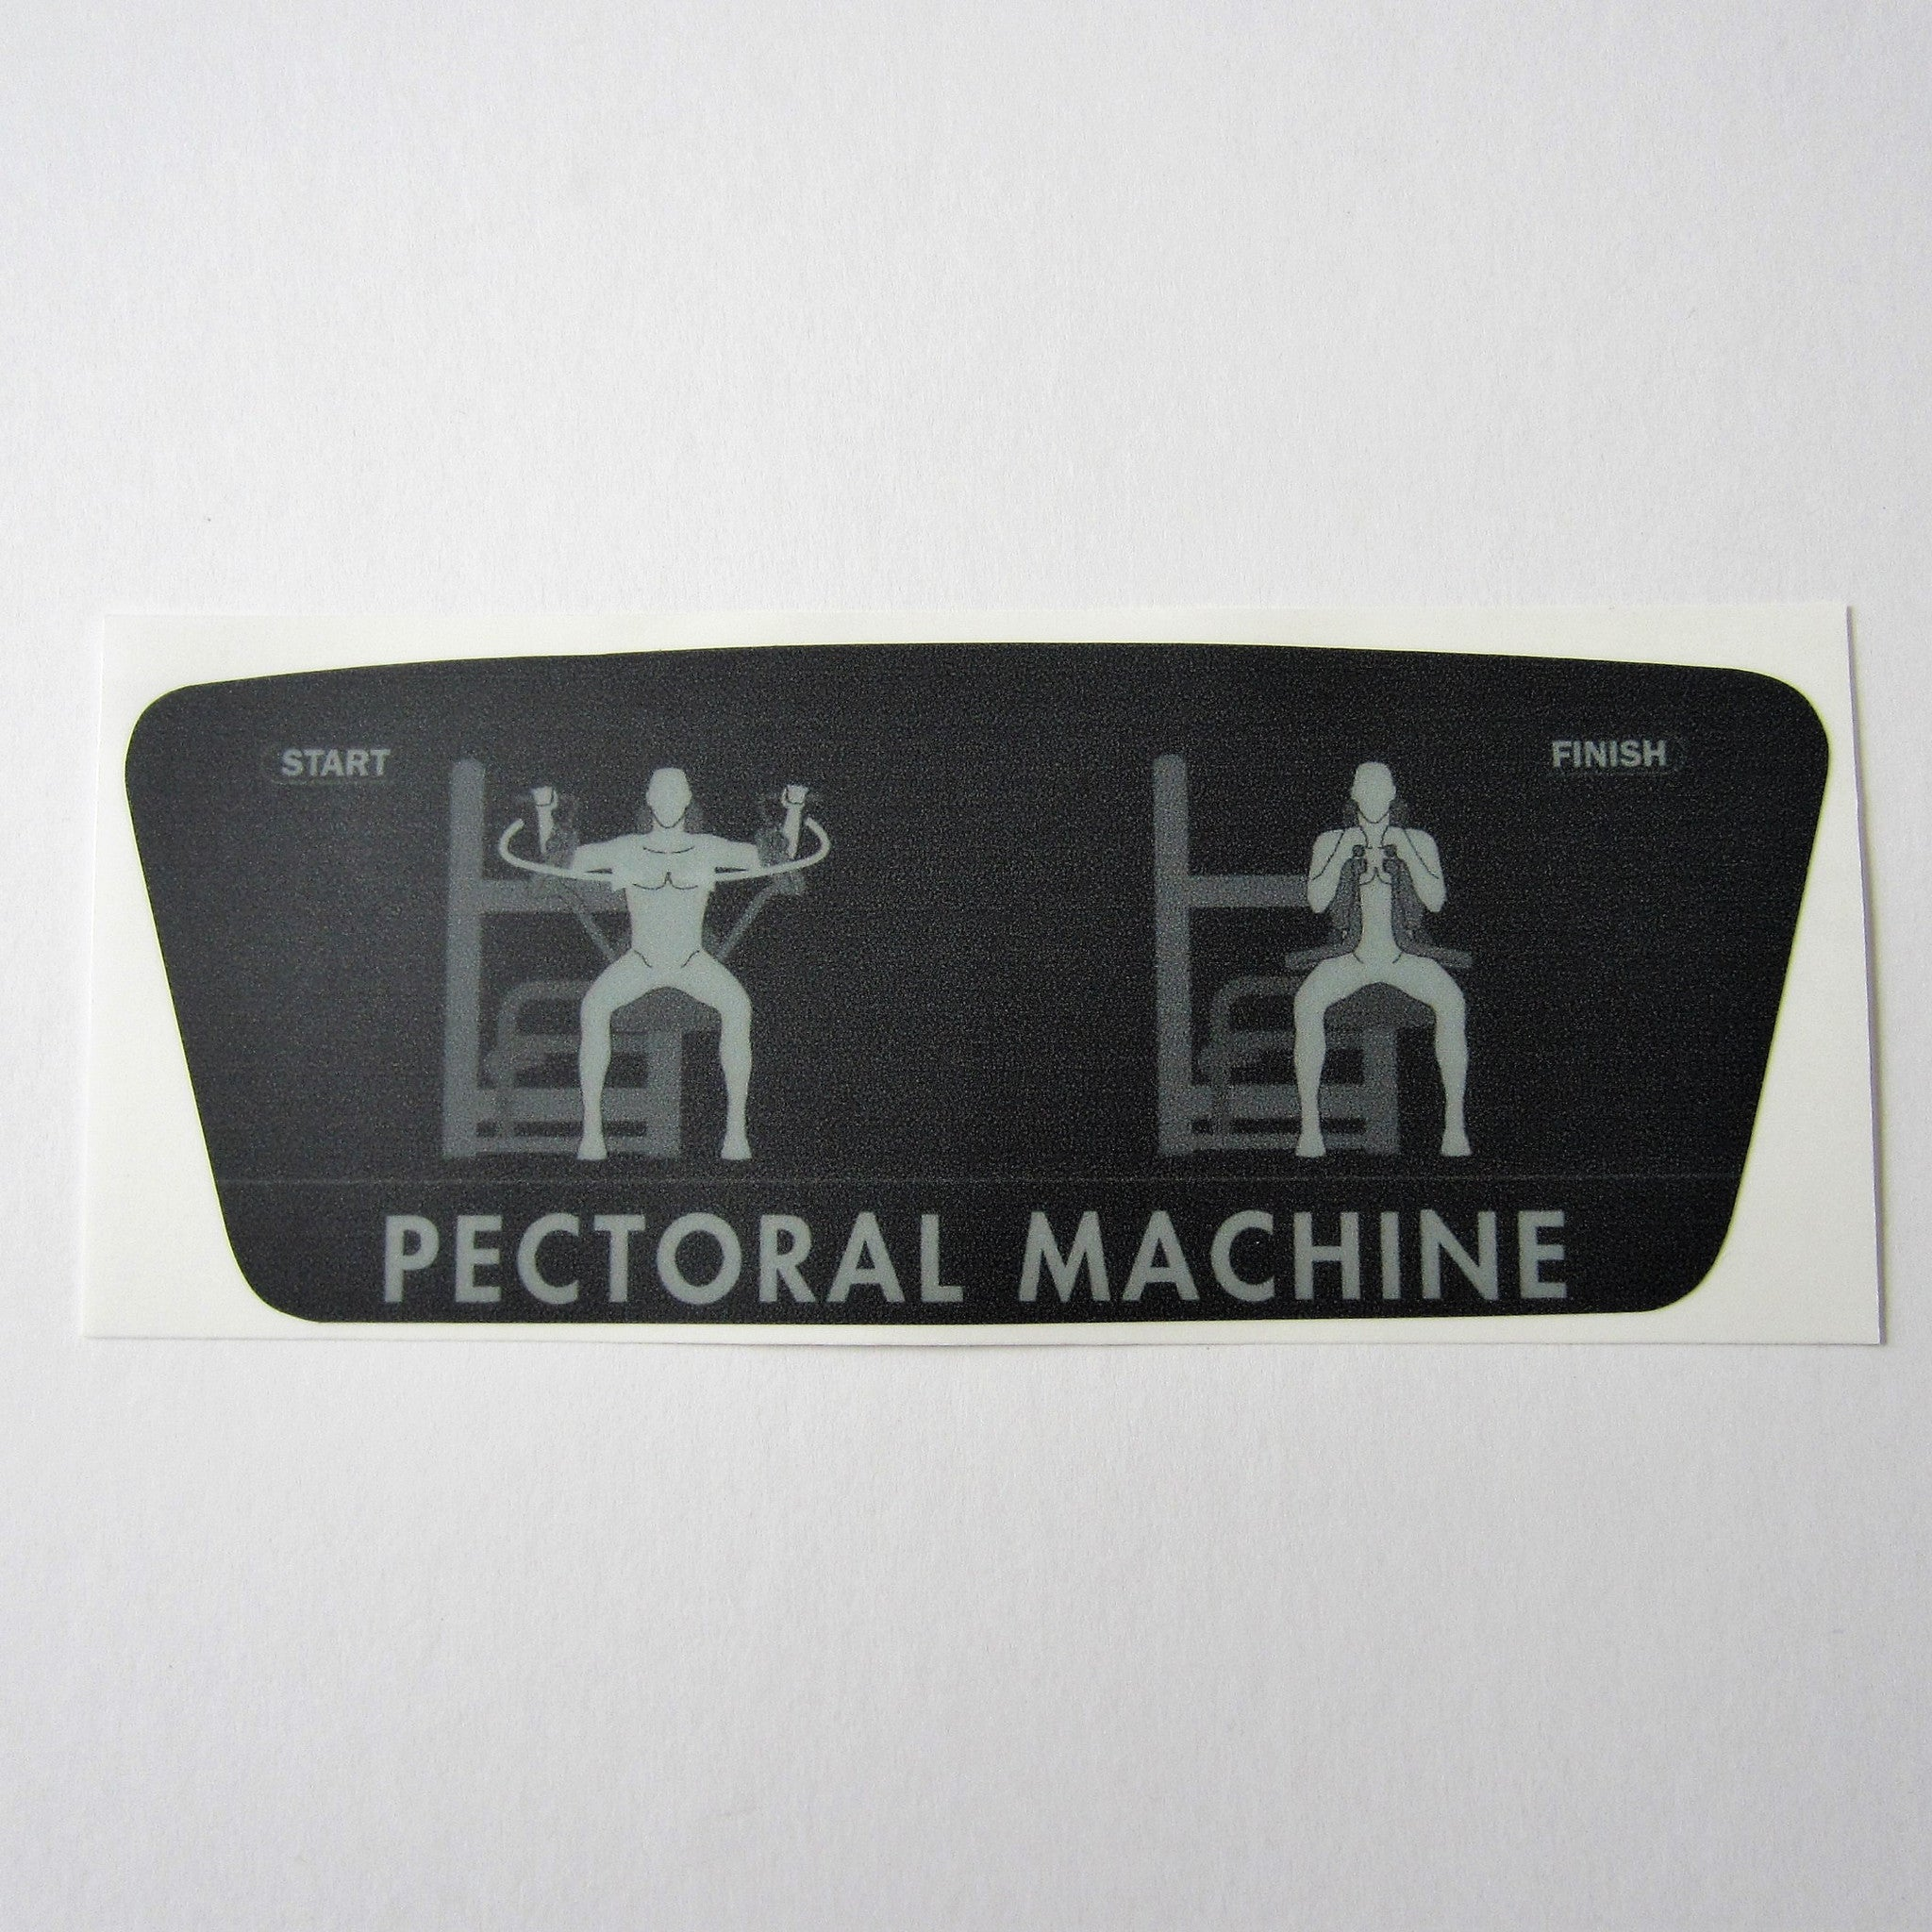 TechnoGym Pectoral Machine